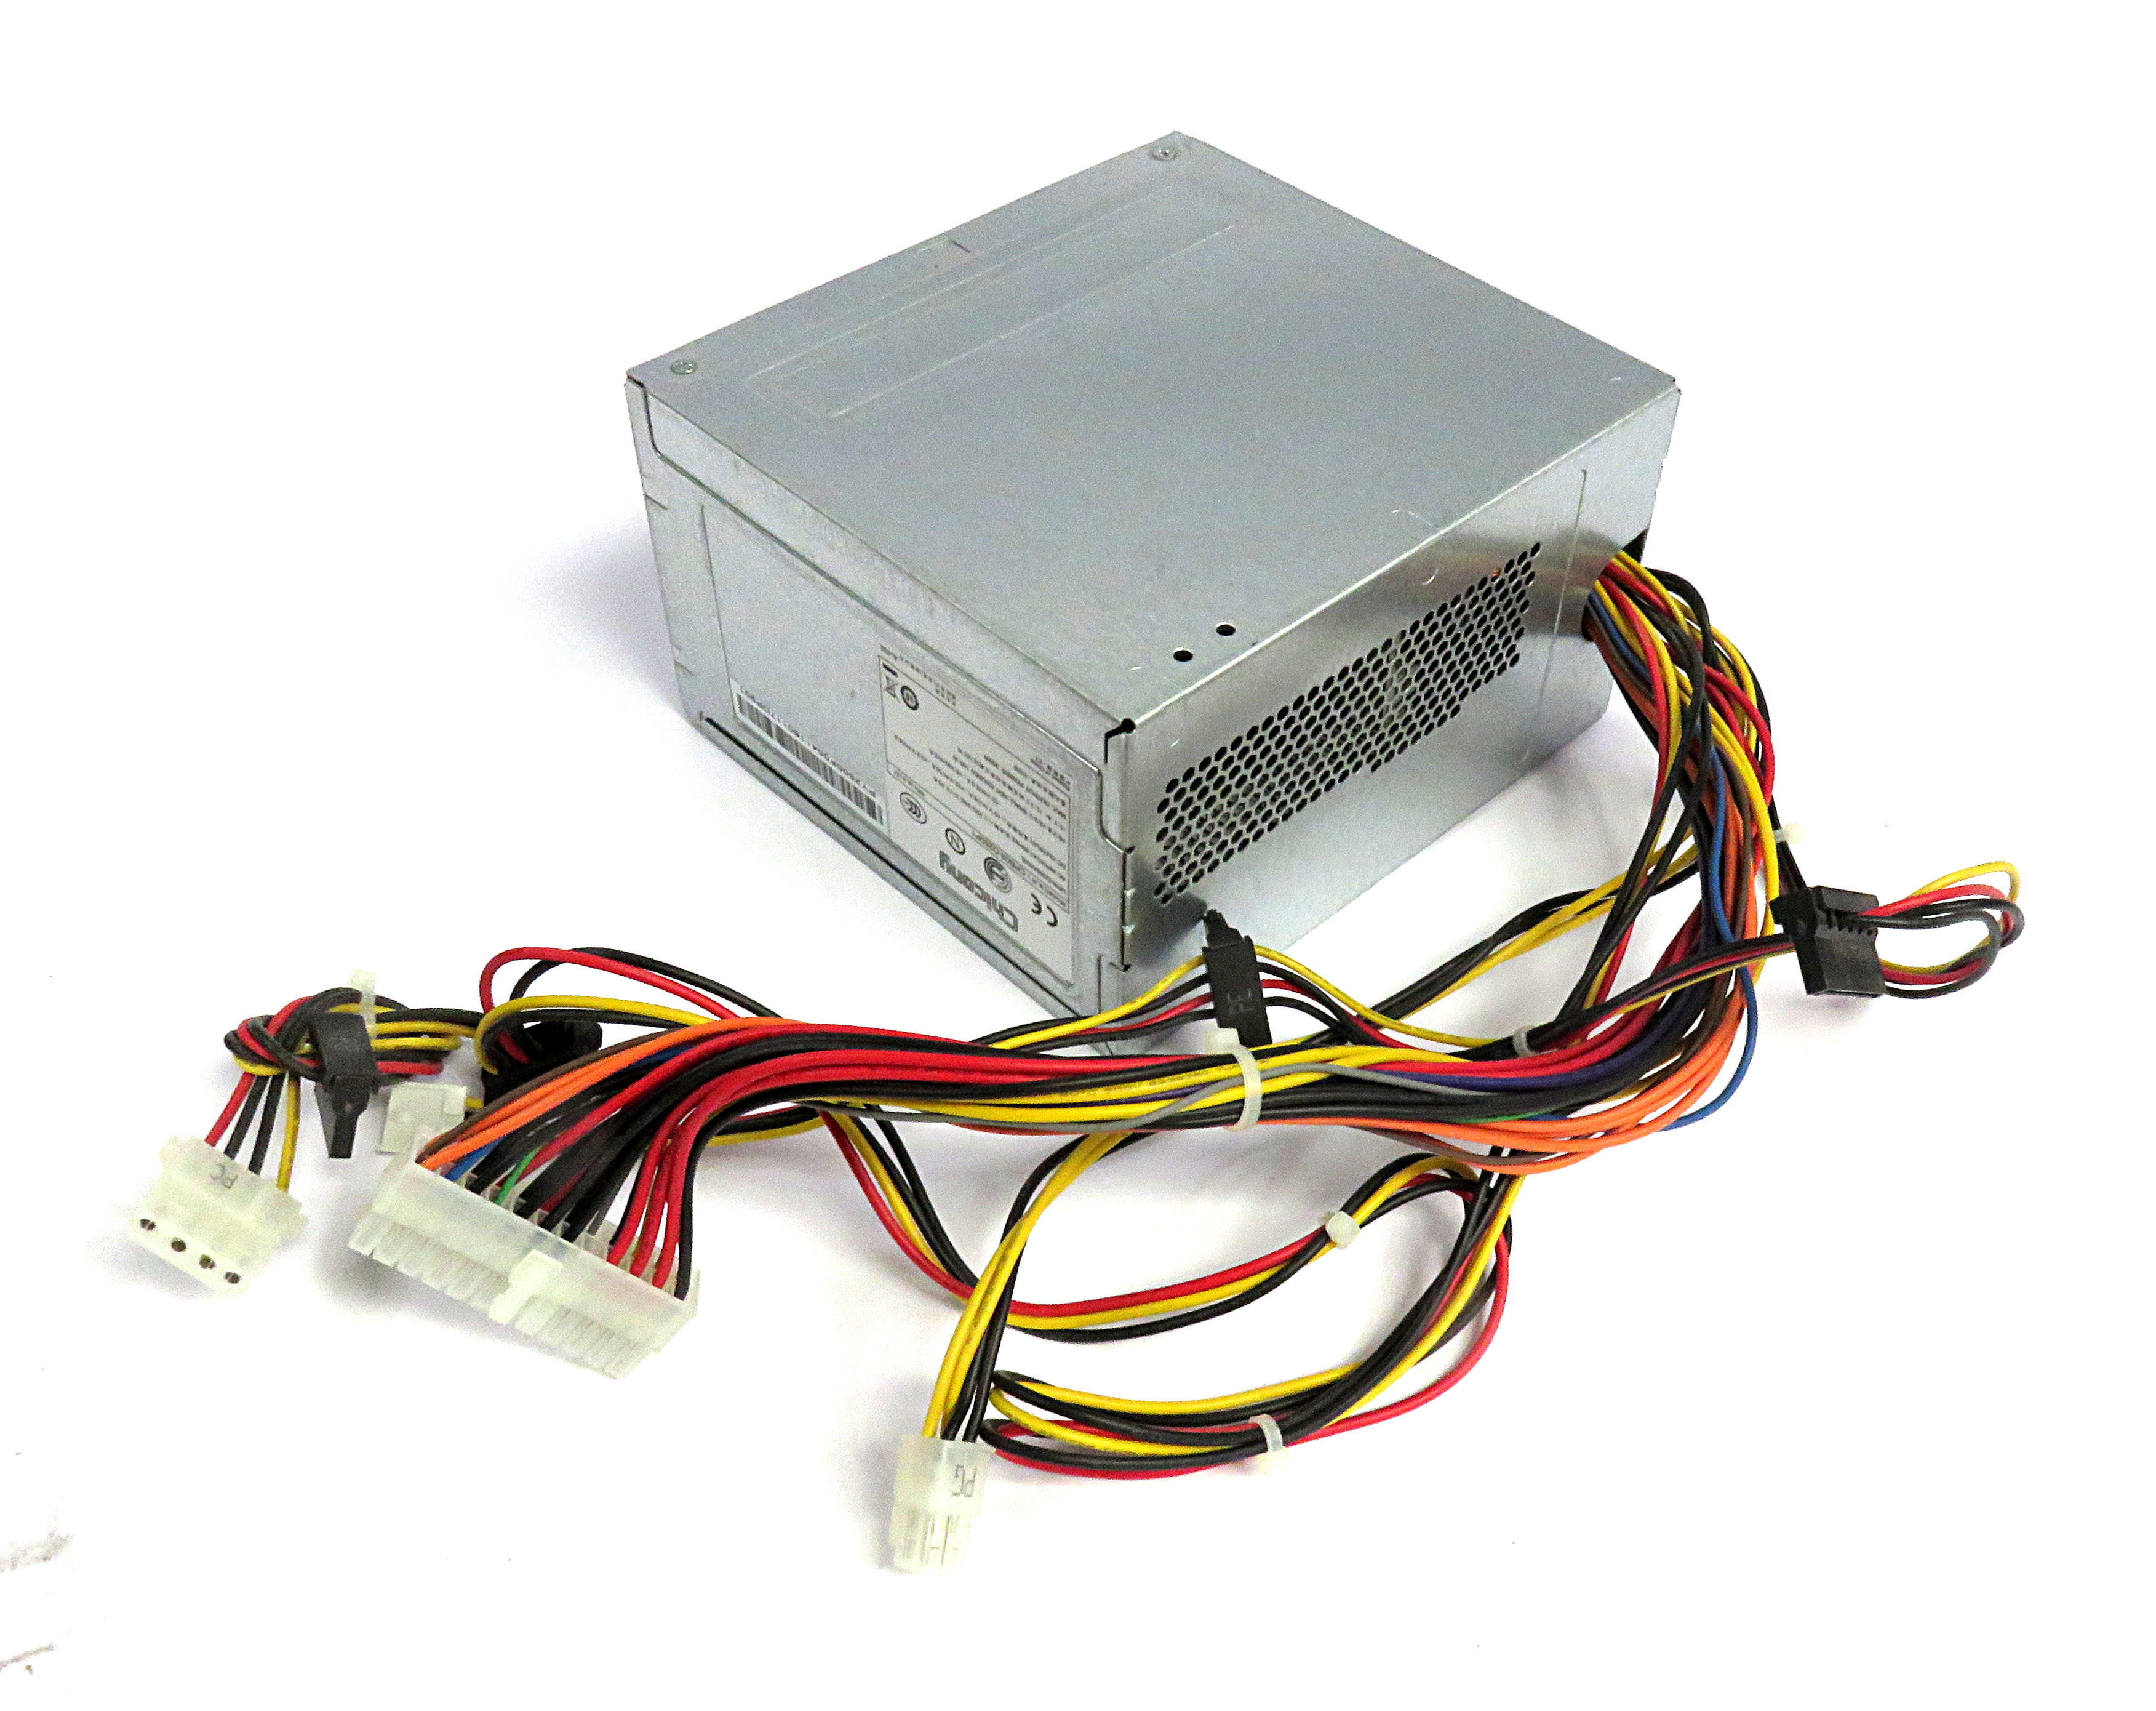 Chicony CPB09-D250P1 250W 24-Pin ATX Power Supply - D250A003L ...